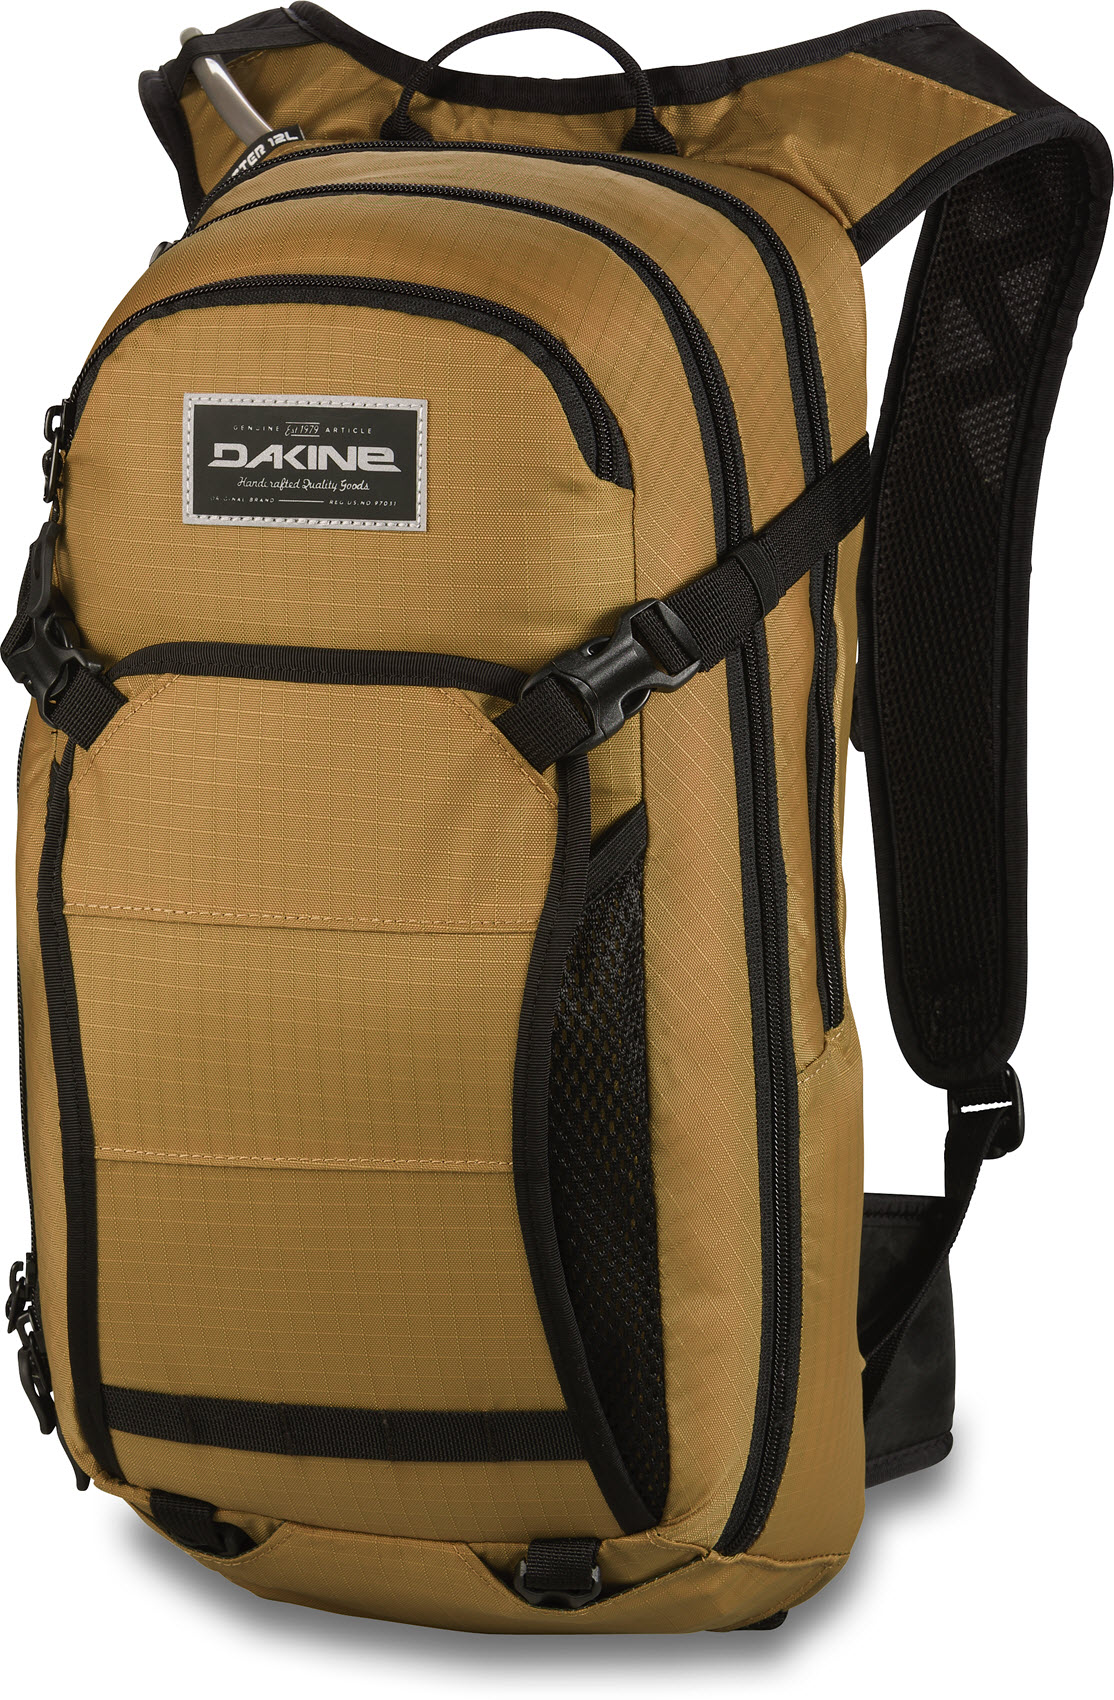 Dakine Bike Backpack - Drafter 12L - Hydration Reservoir, Mountain ...